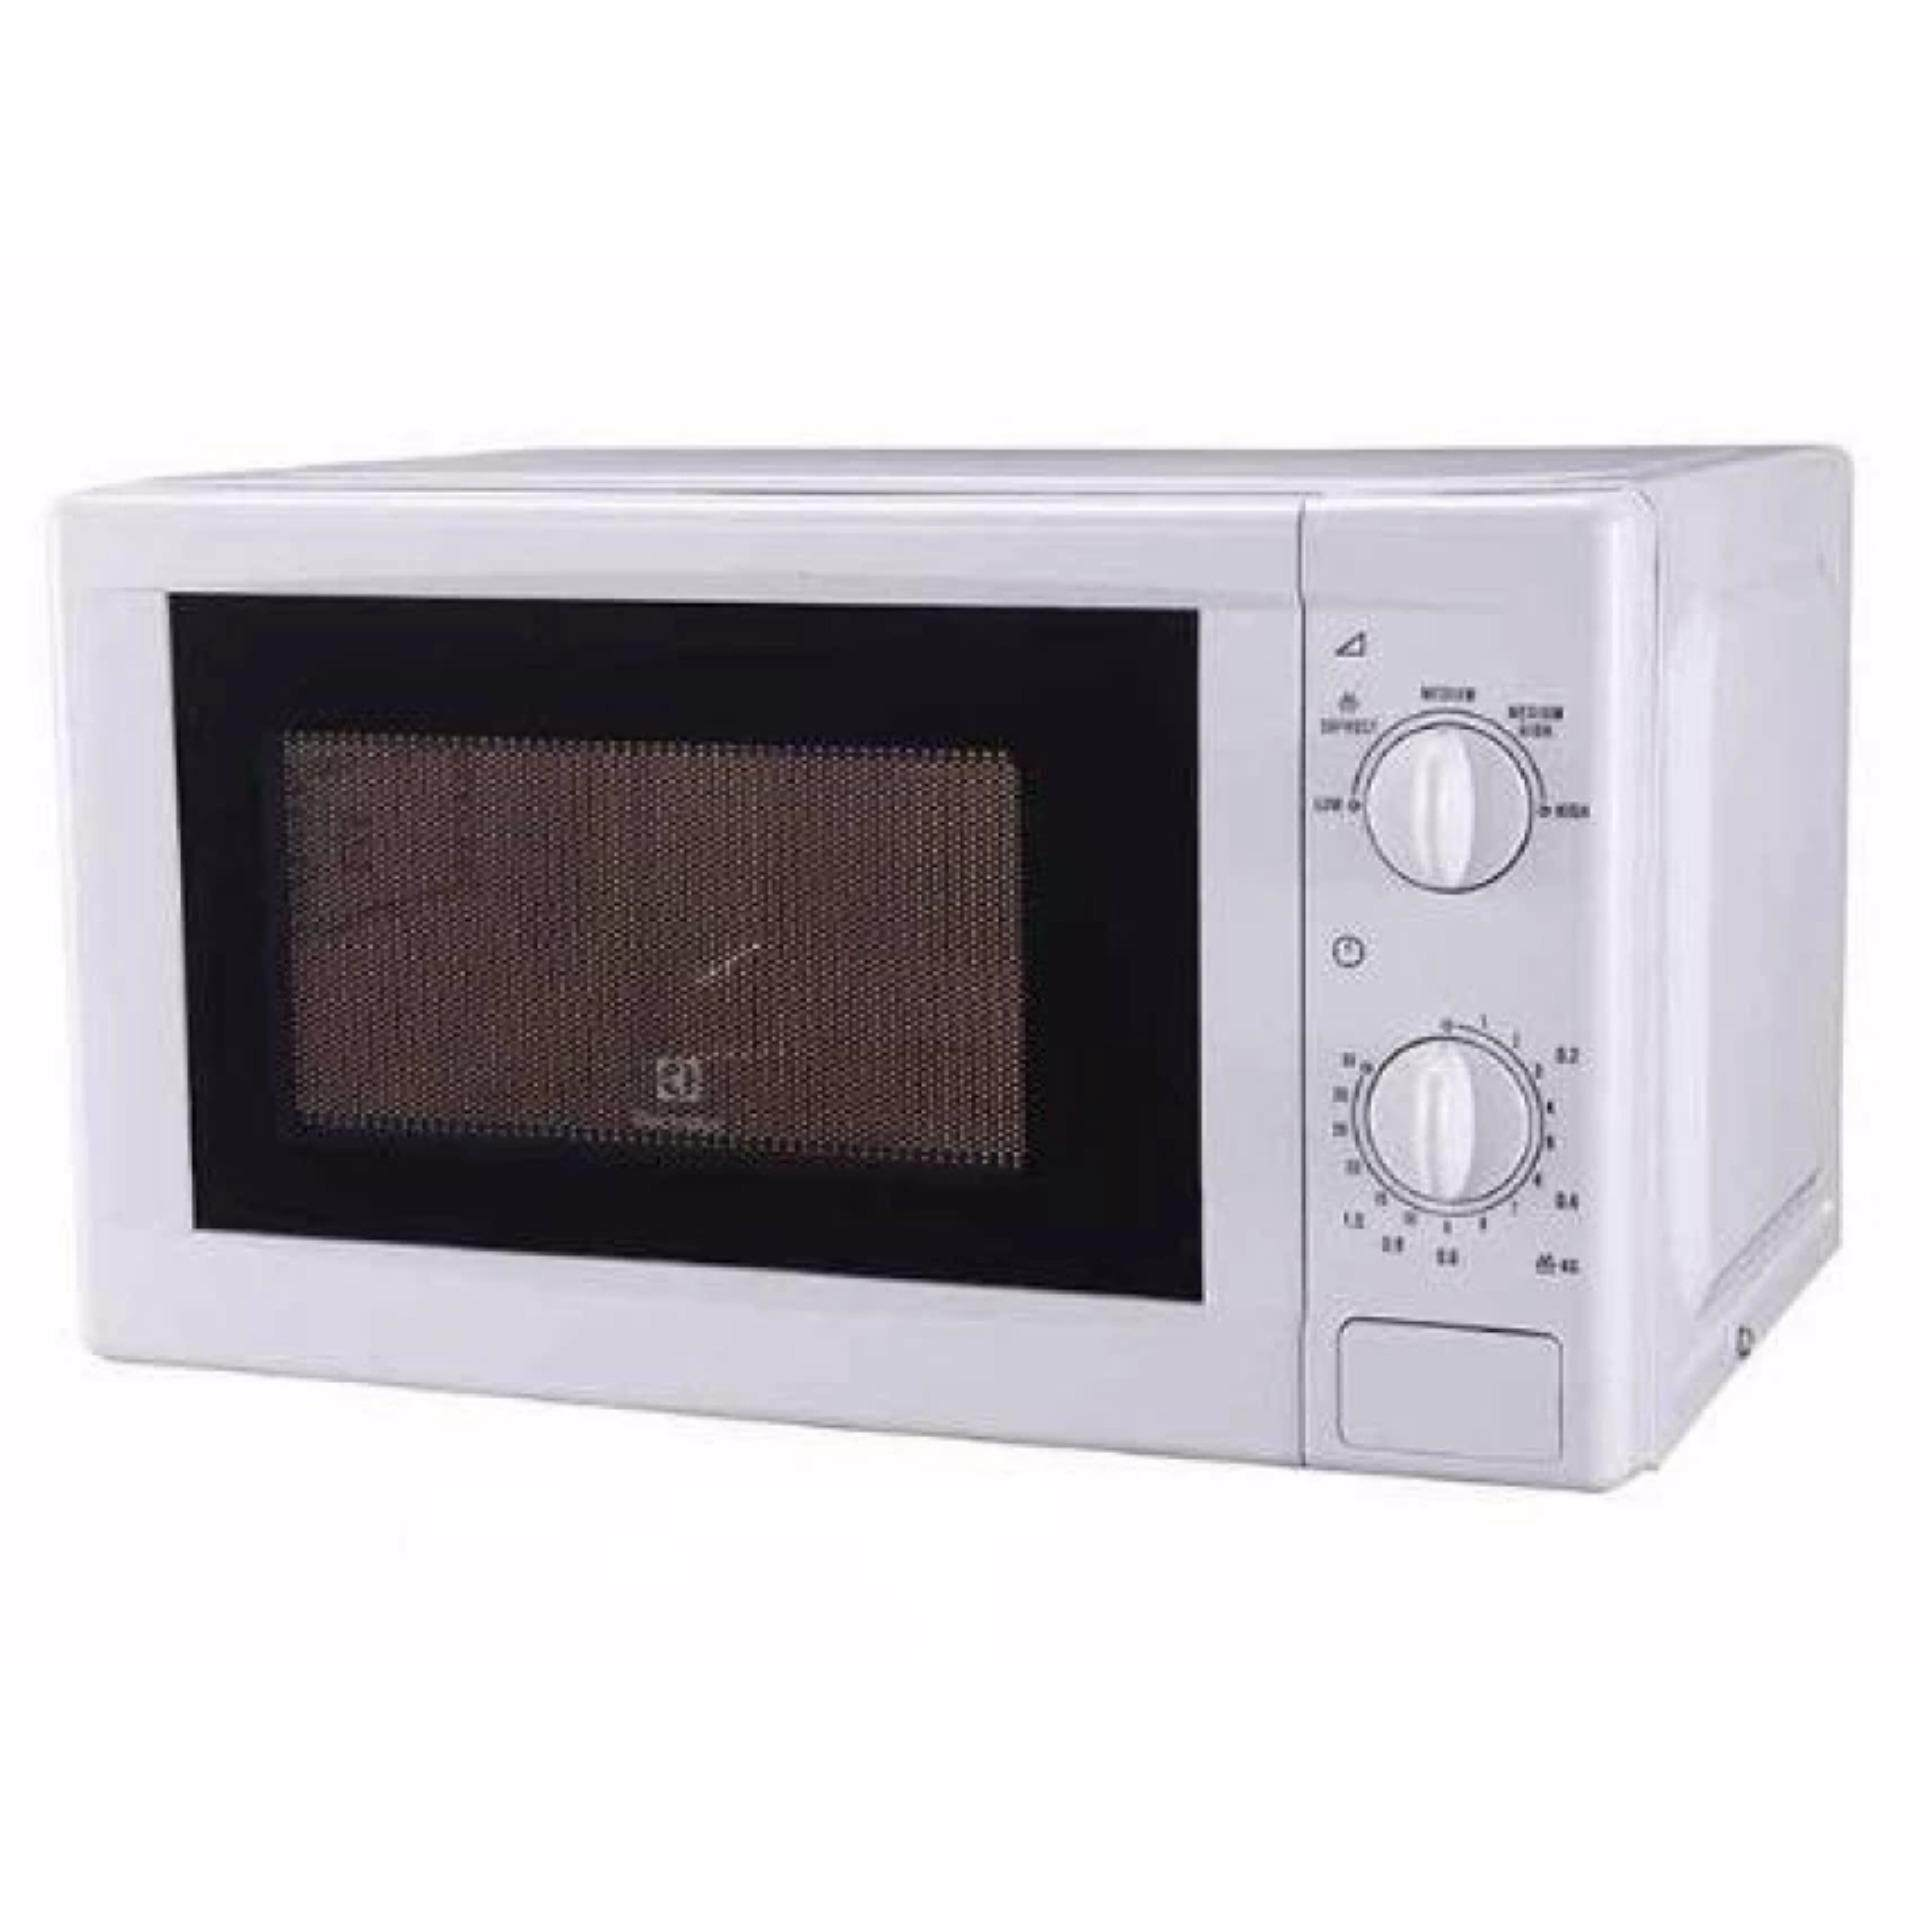 ELECTROLUX MICROWAVE OVEN (20L) EMM2021MW